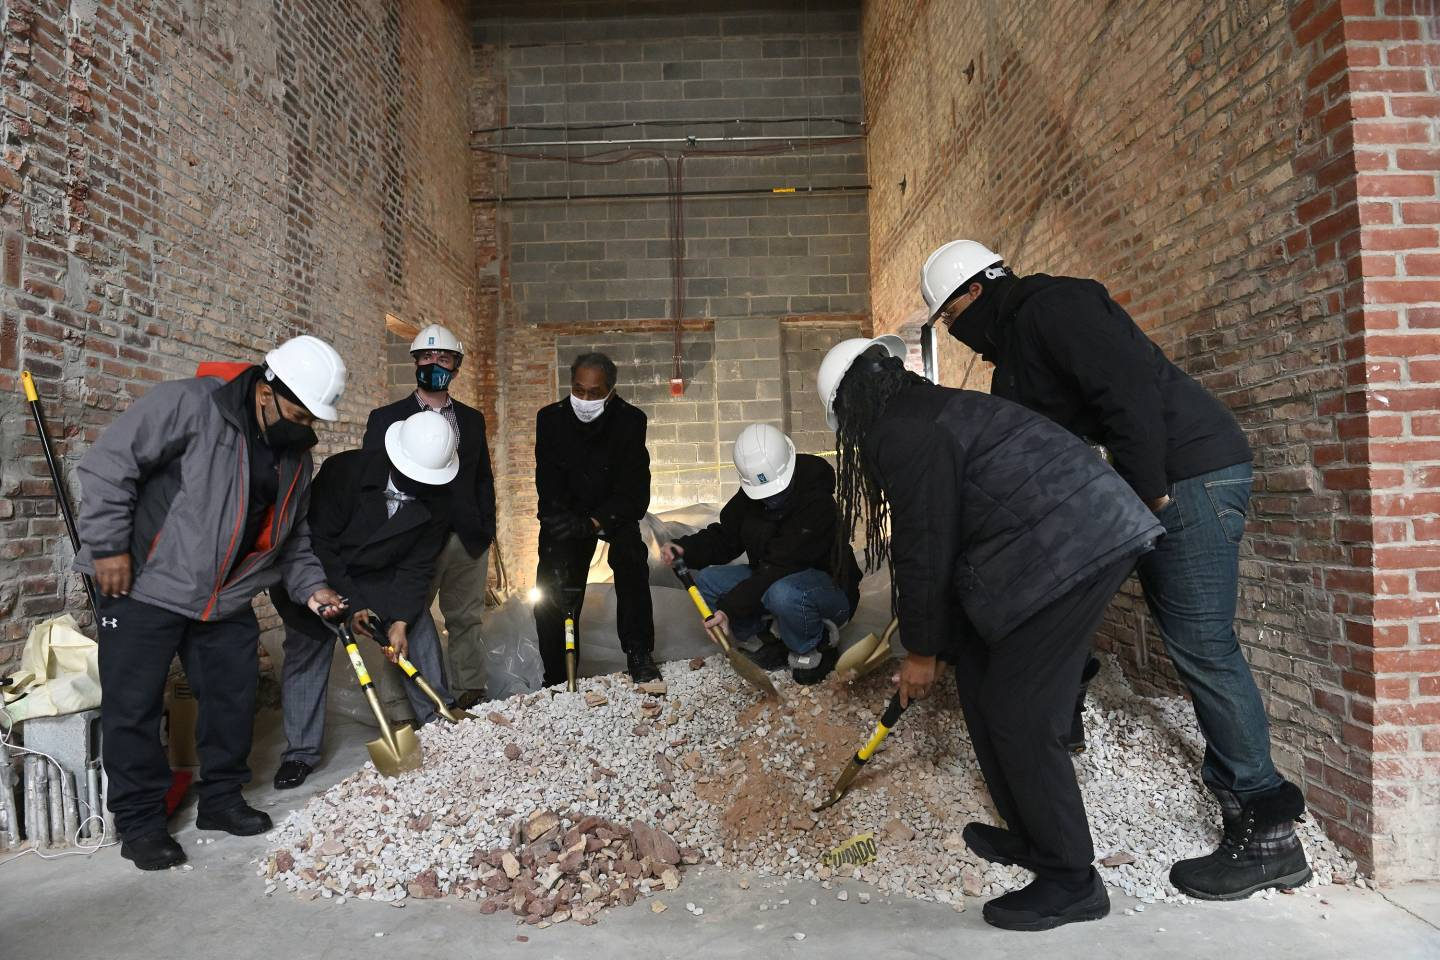 Community leaders and developers shovel brick dust in an empty row home